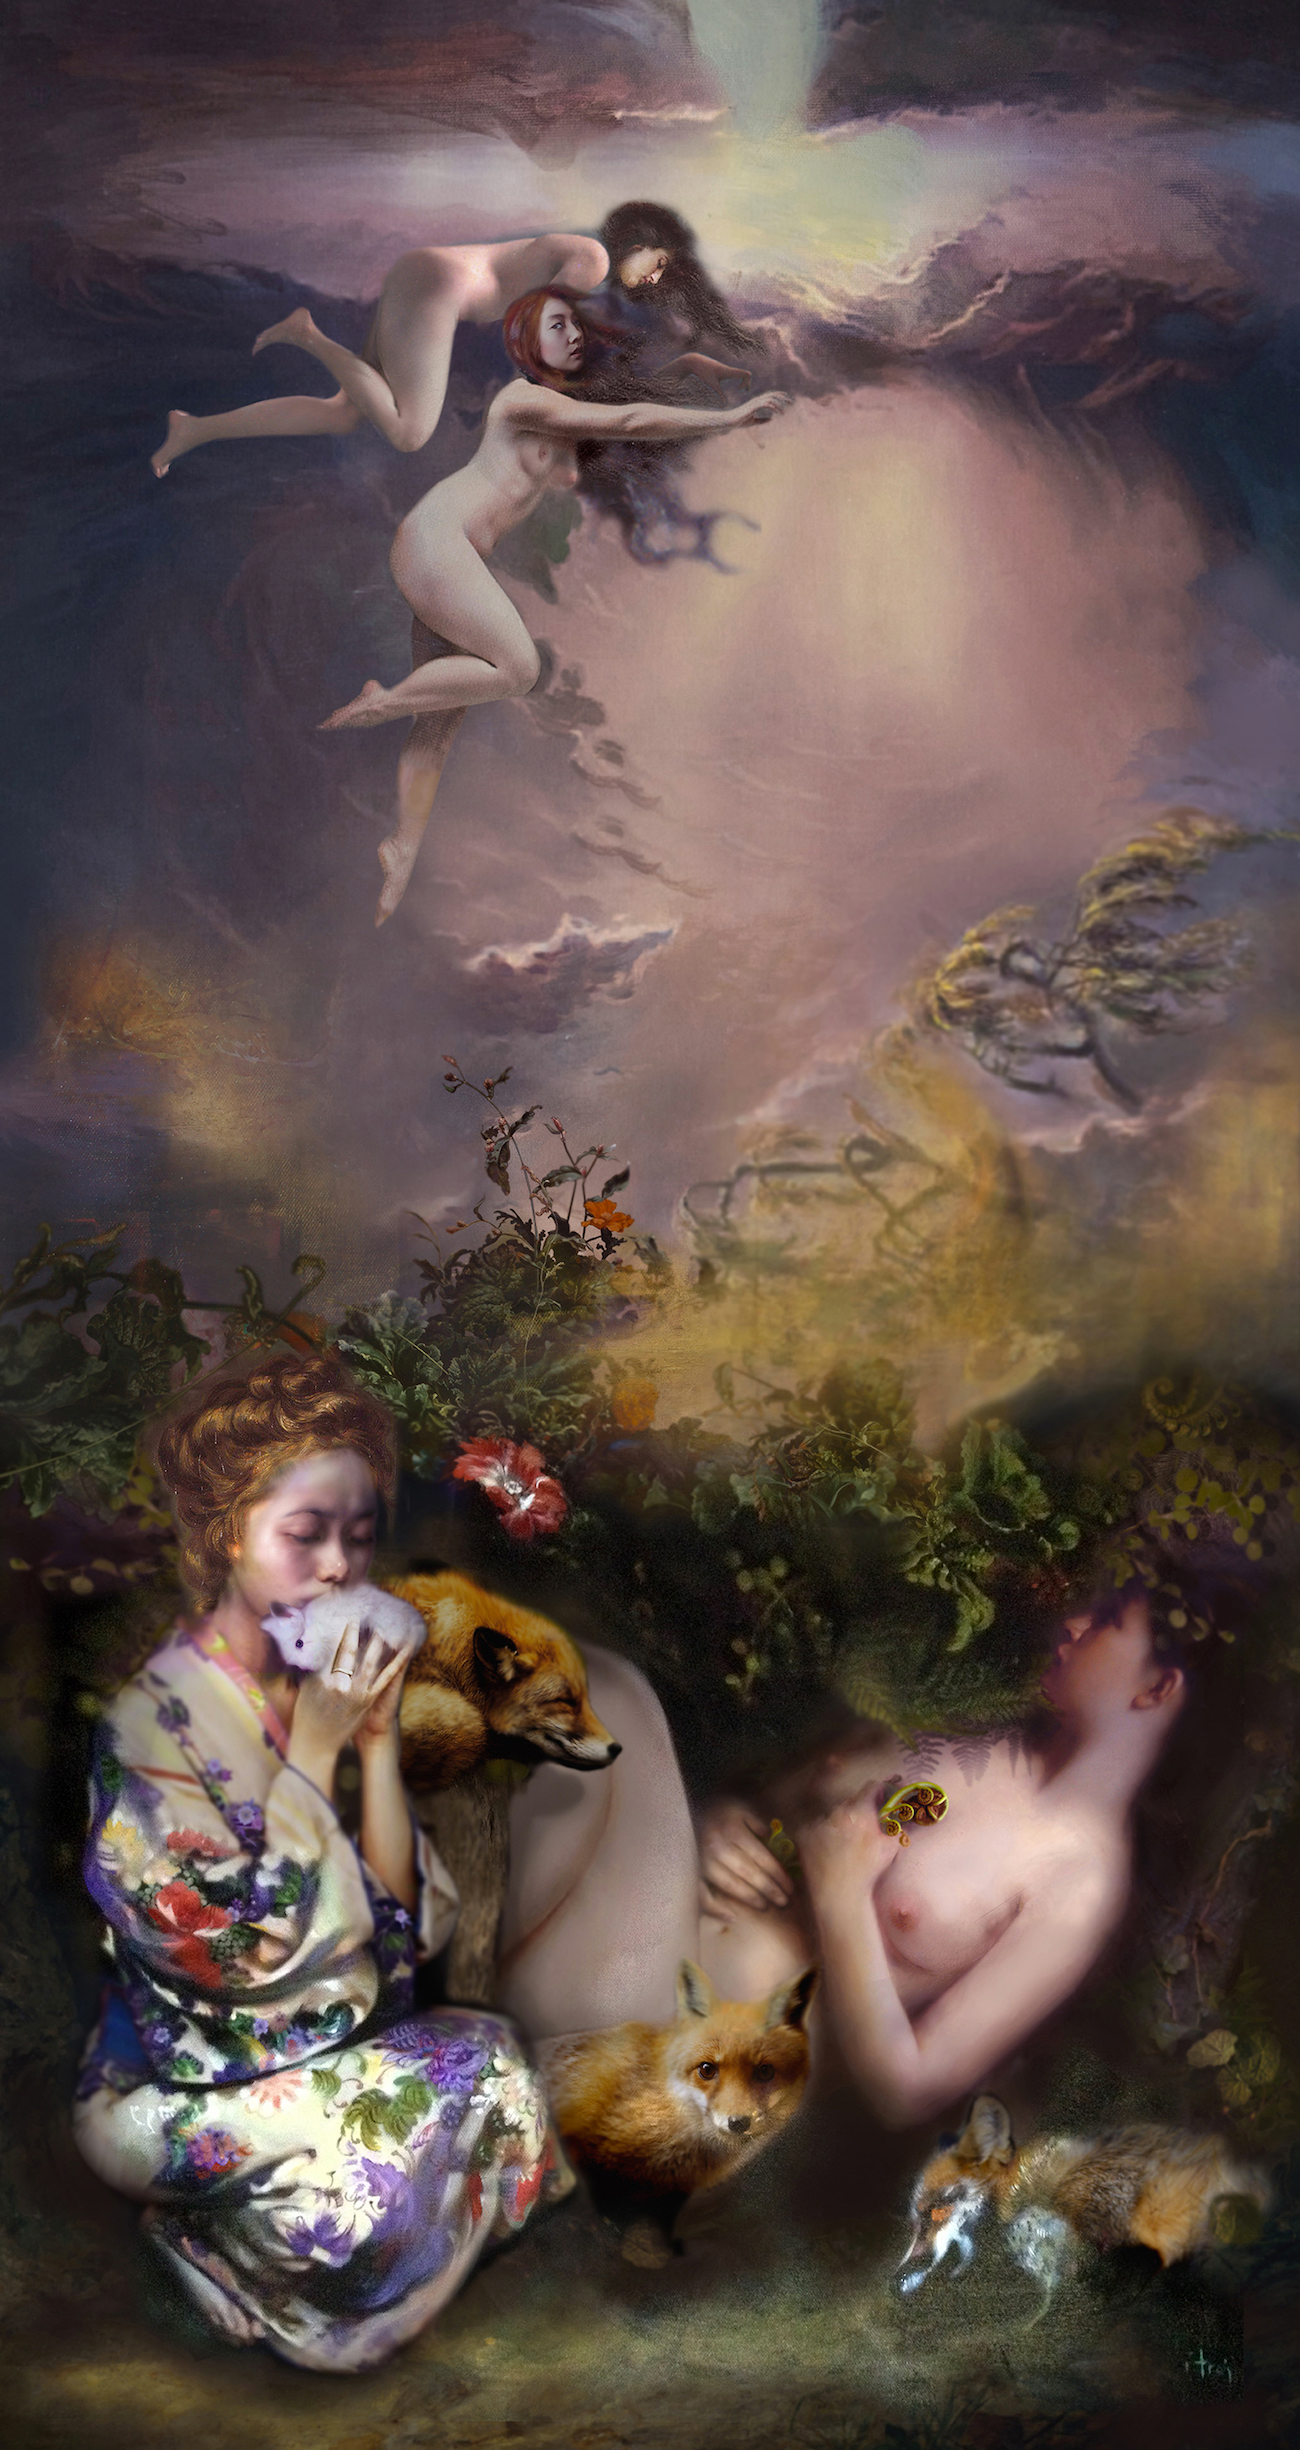 Iva Troj, Make A Child in the Forest II, pastels, acrylics, oil on canvas, 103 x 55cm